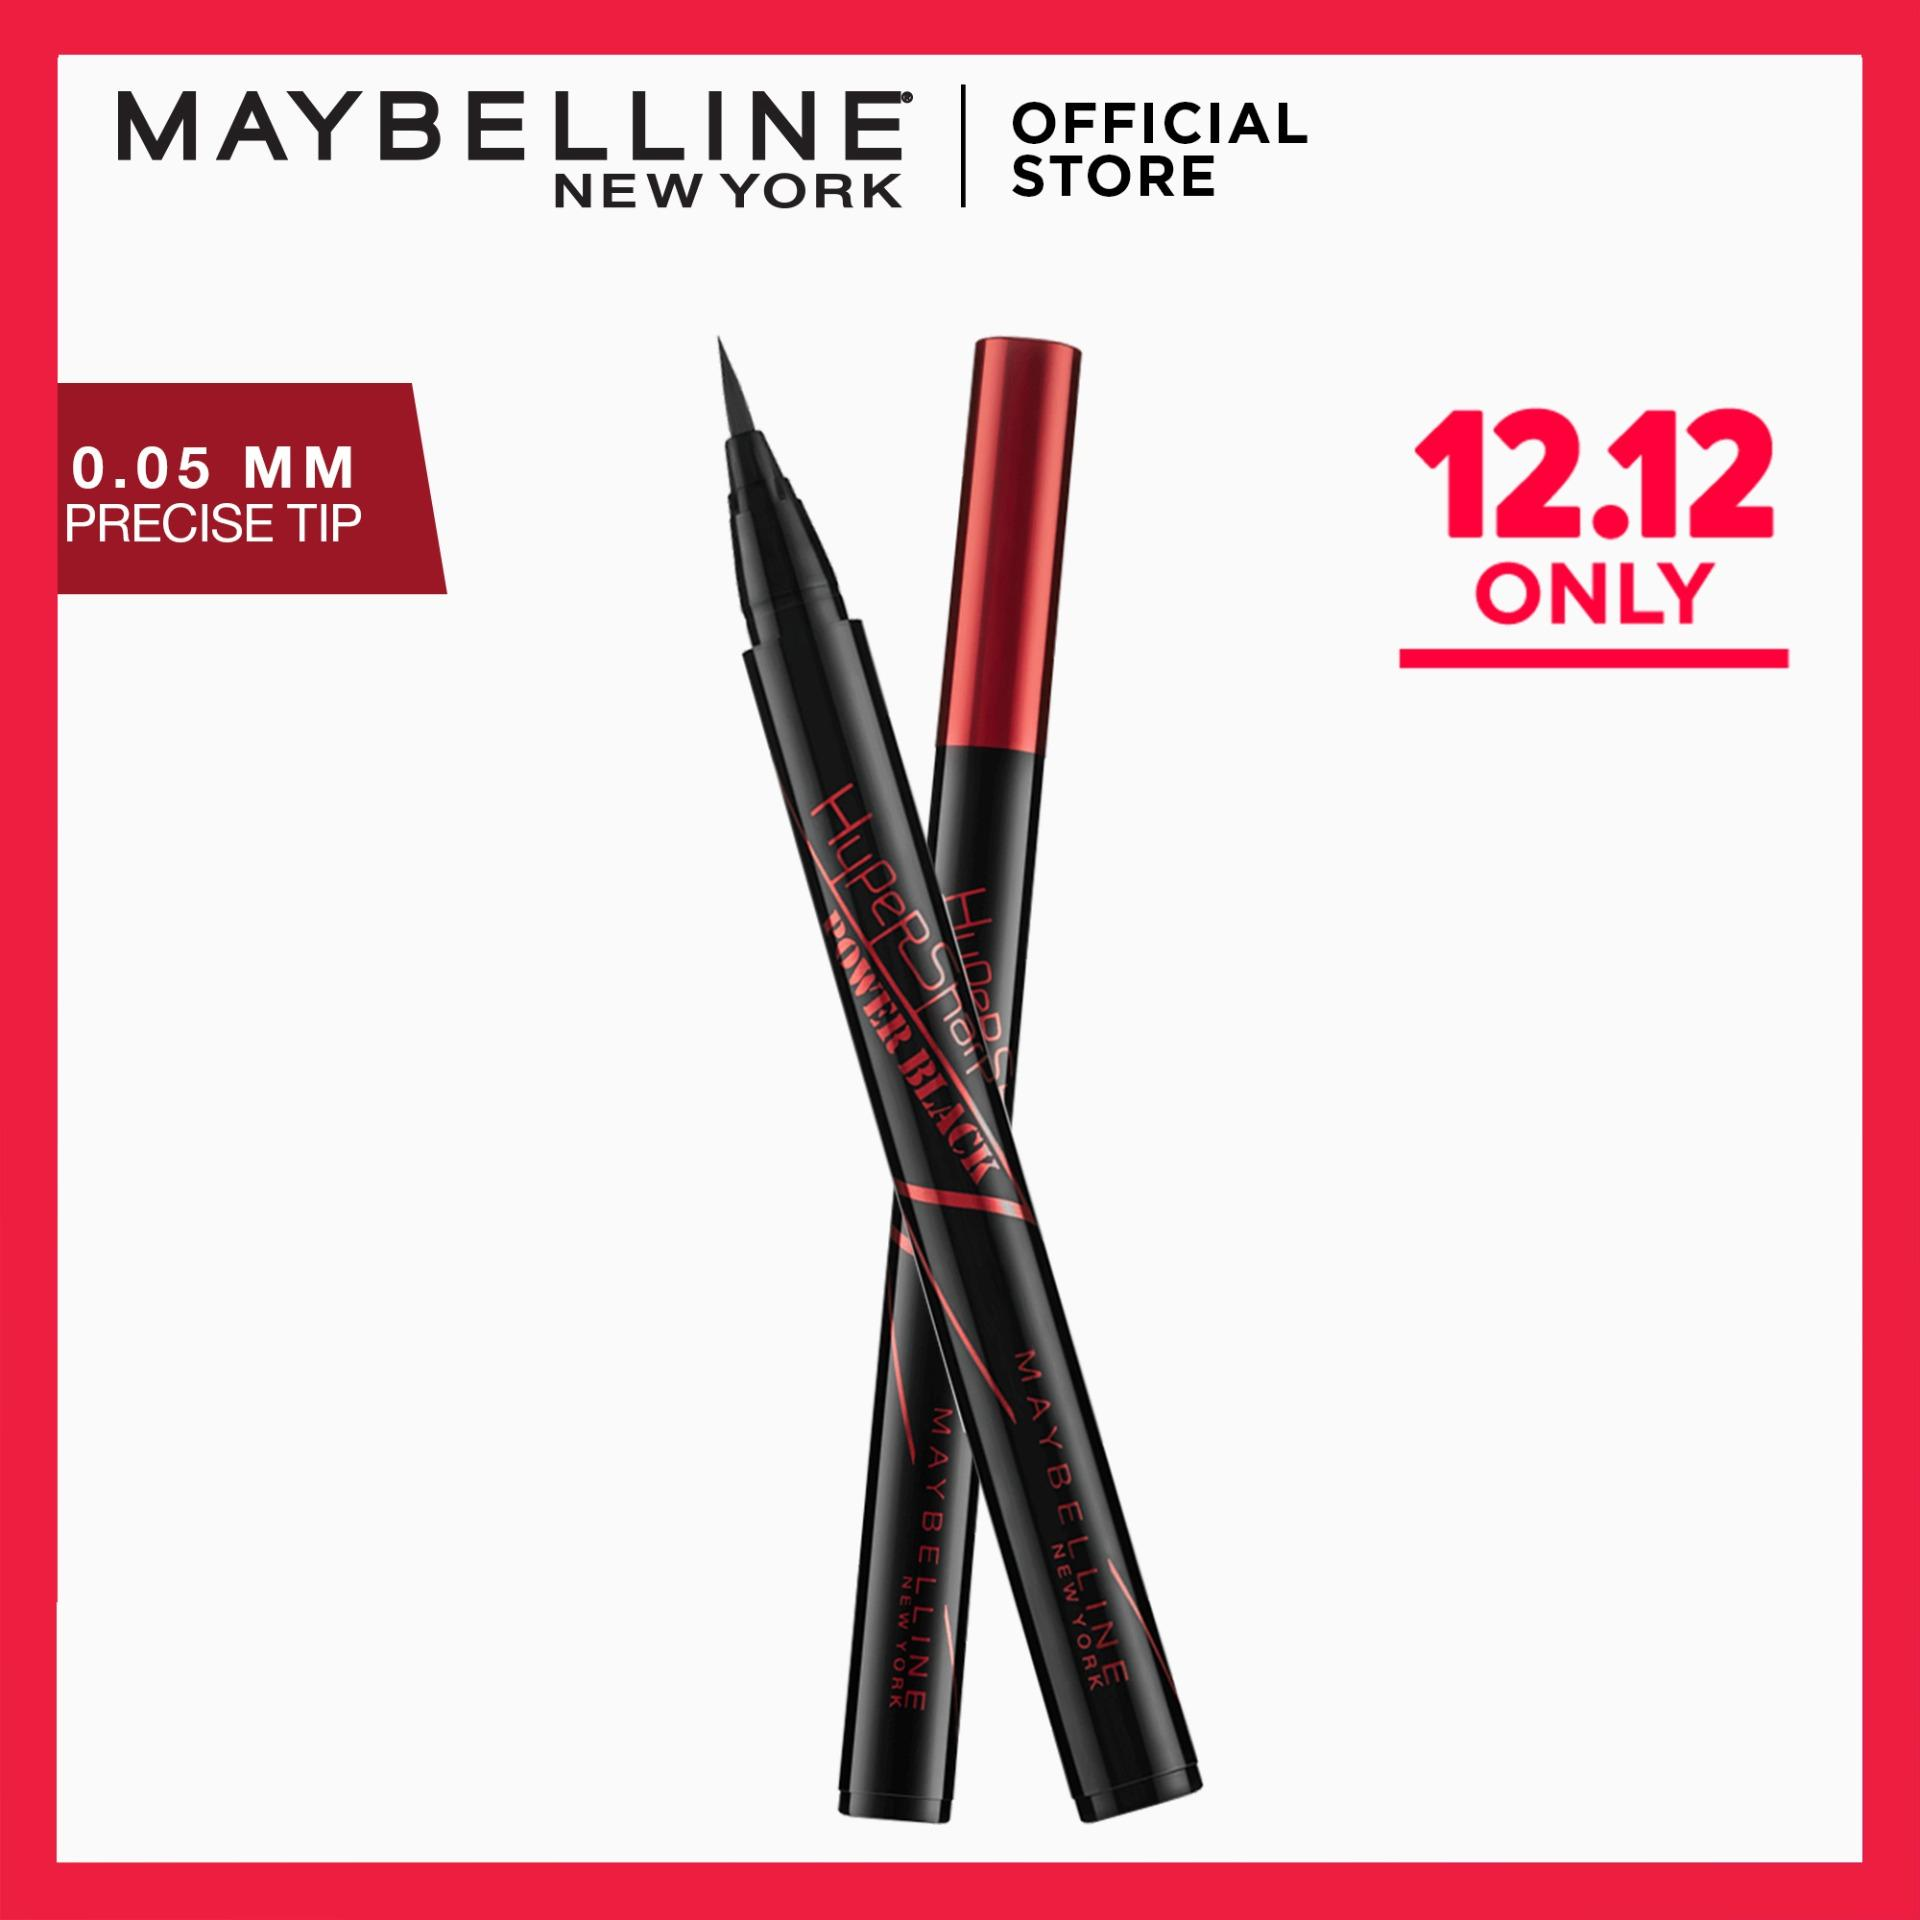 Kajal Brands Eye Liner On Sale Prices Set Reviews In Maybelline Hyper Sharp Wing Eyeliner Hypersharp Powerblack Liquid Pen Black Ultra Precise By